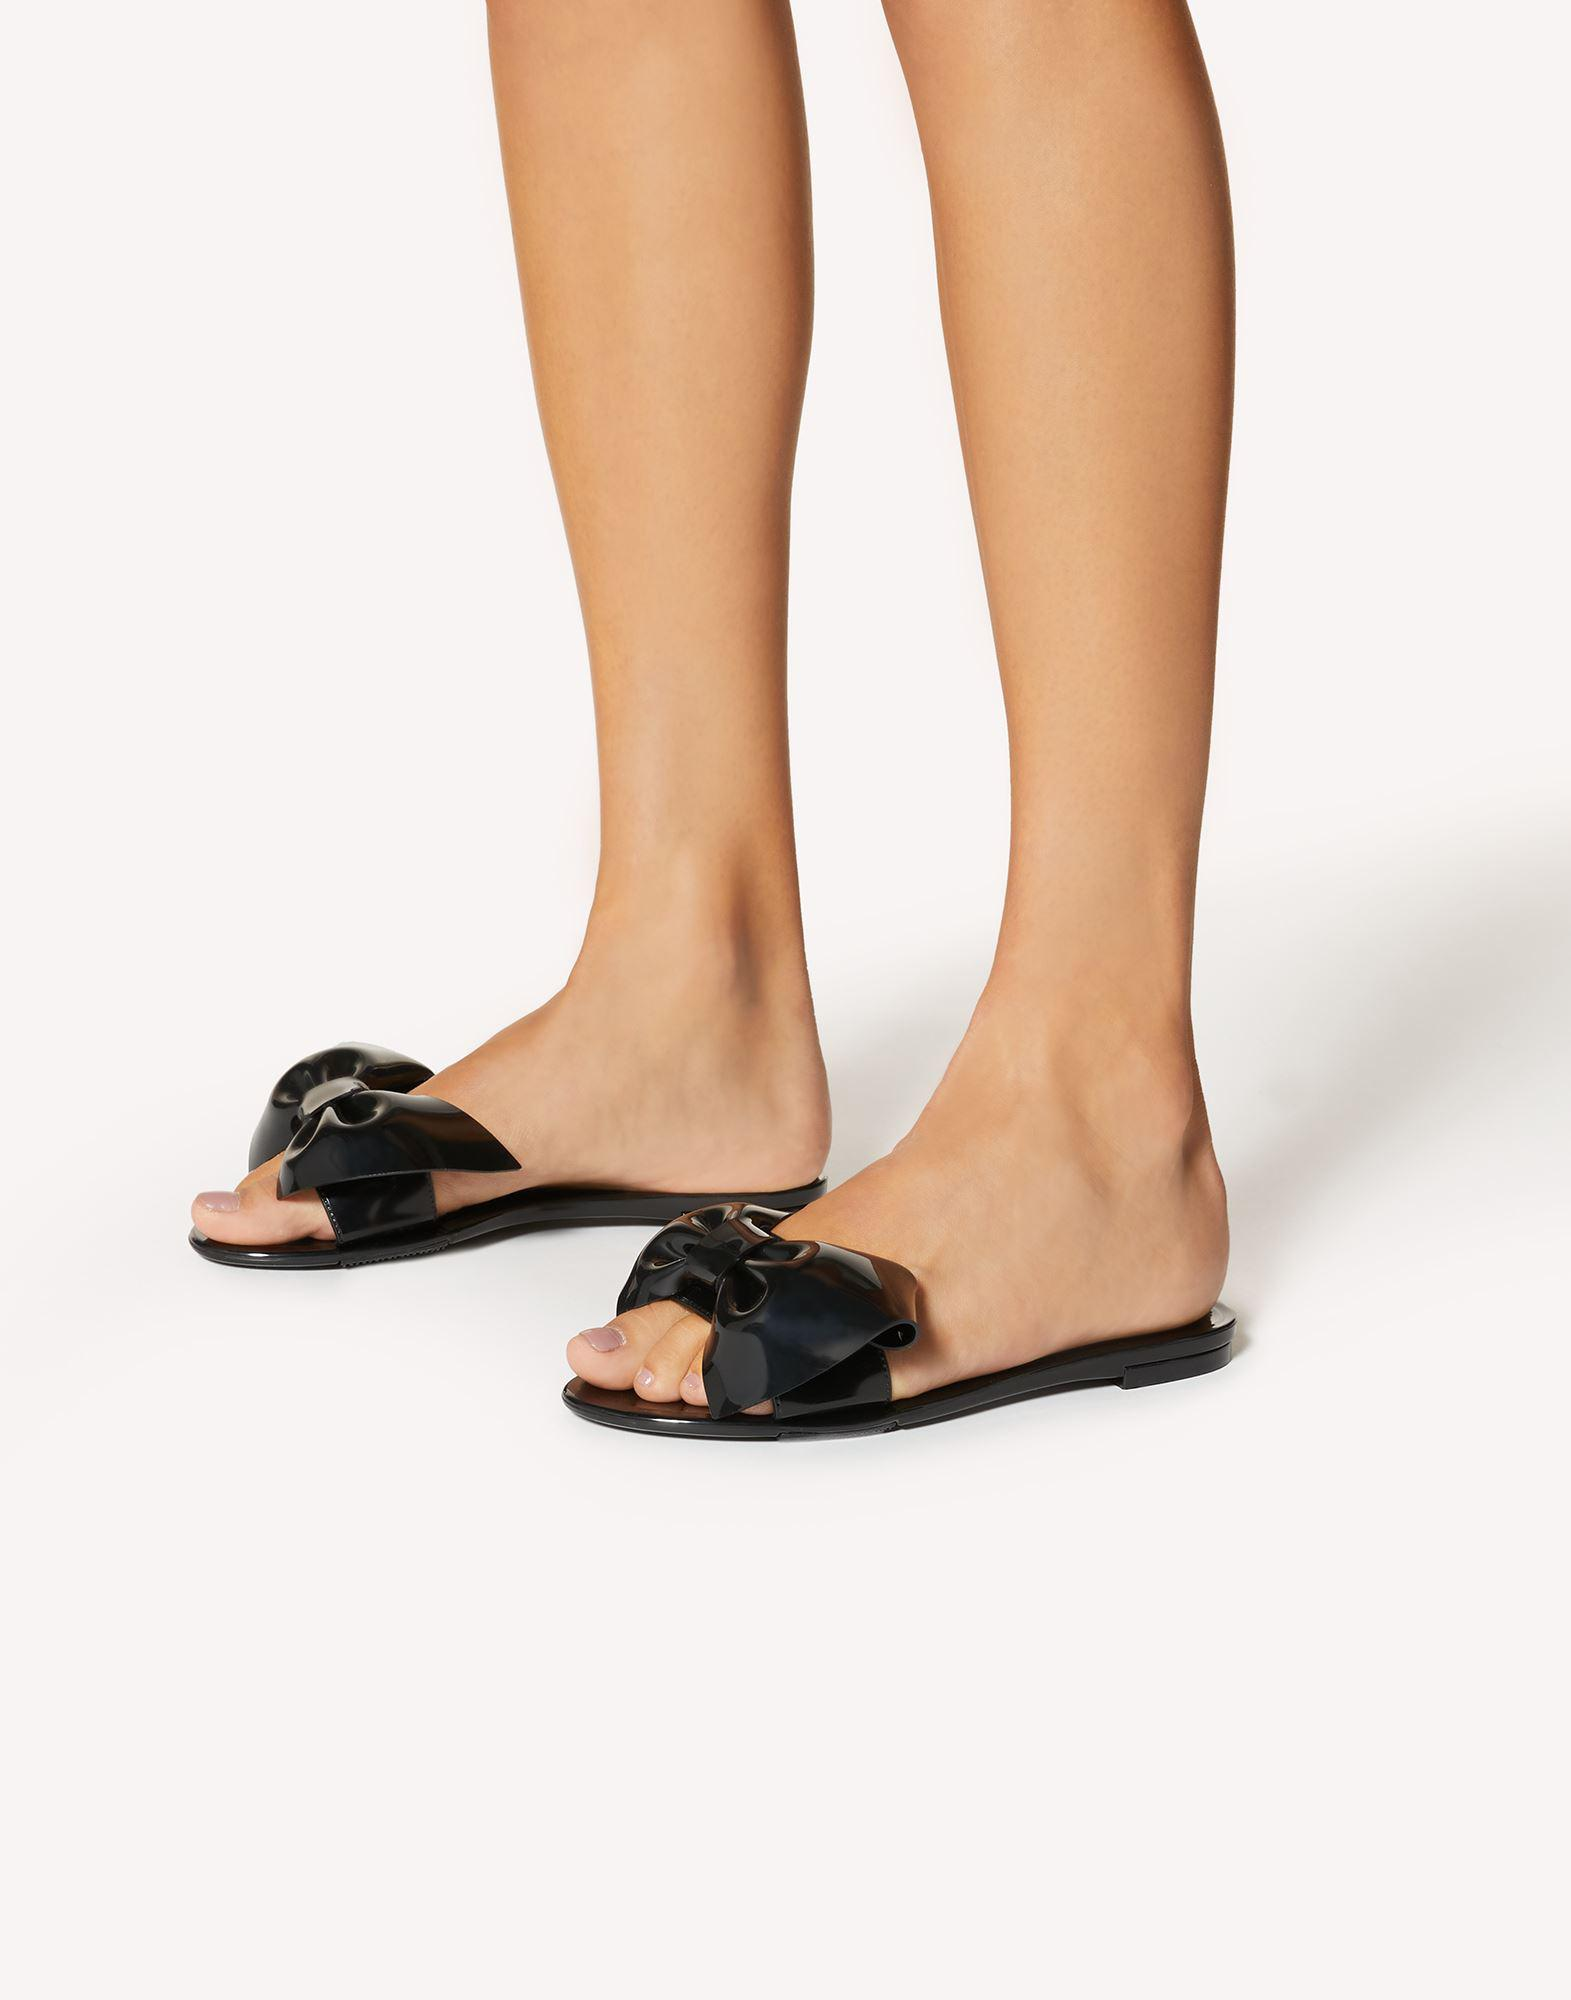 RED JELLY RUBBER SANDAL 5